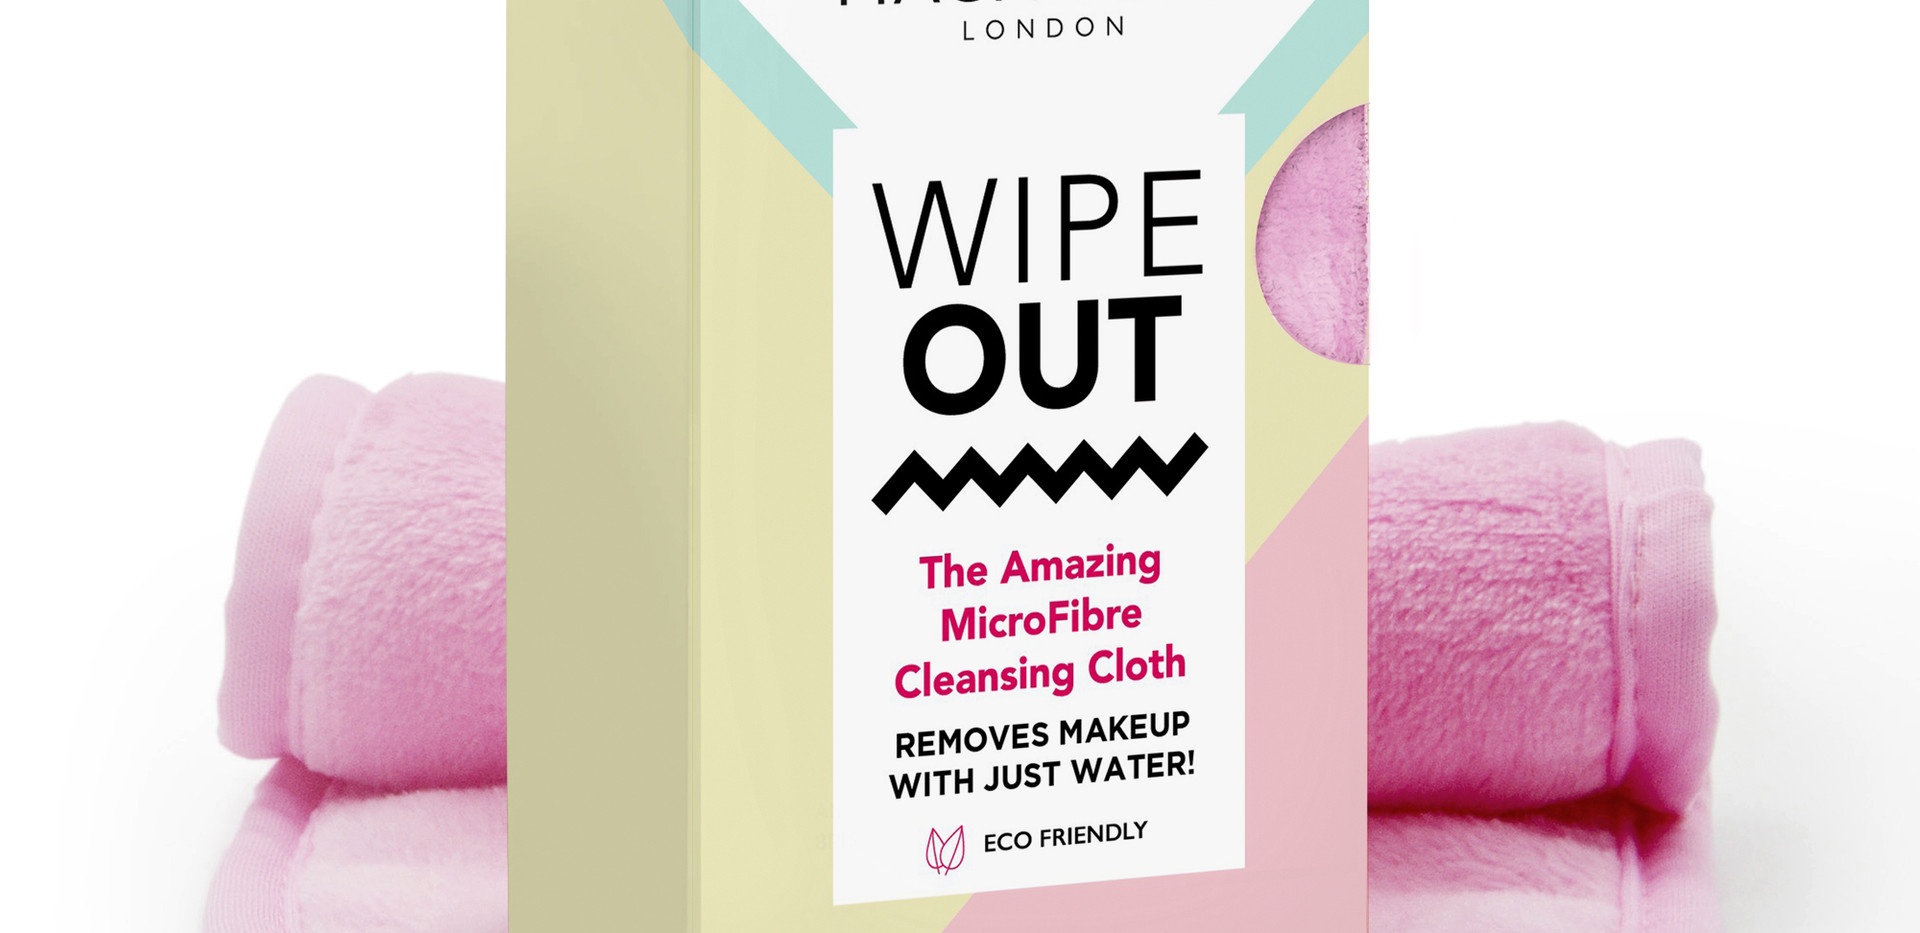 Magnitone, Wipeout! Microfibre Cleansing Cloth. Full Size, £15